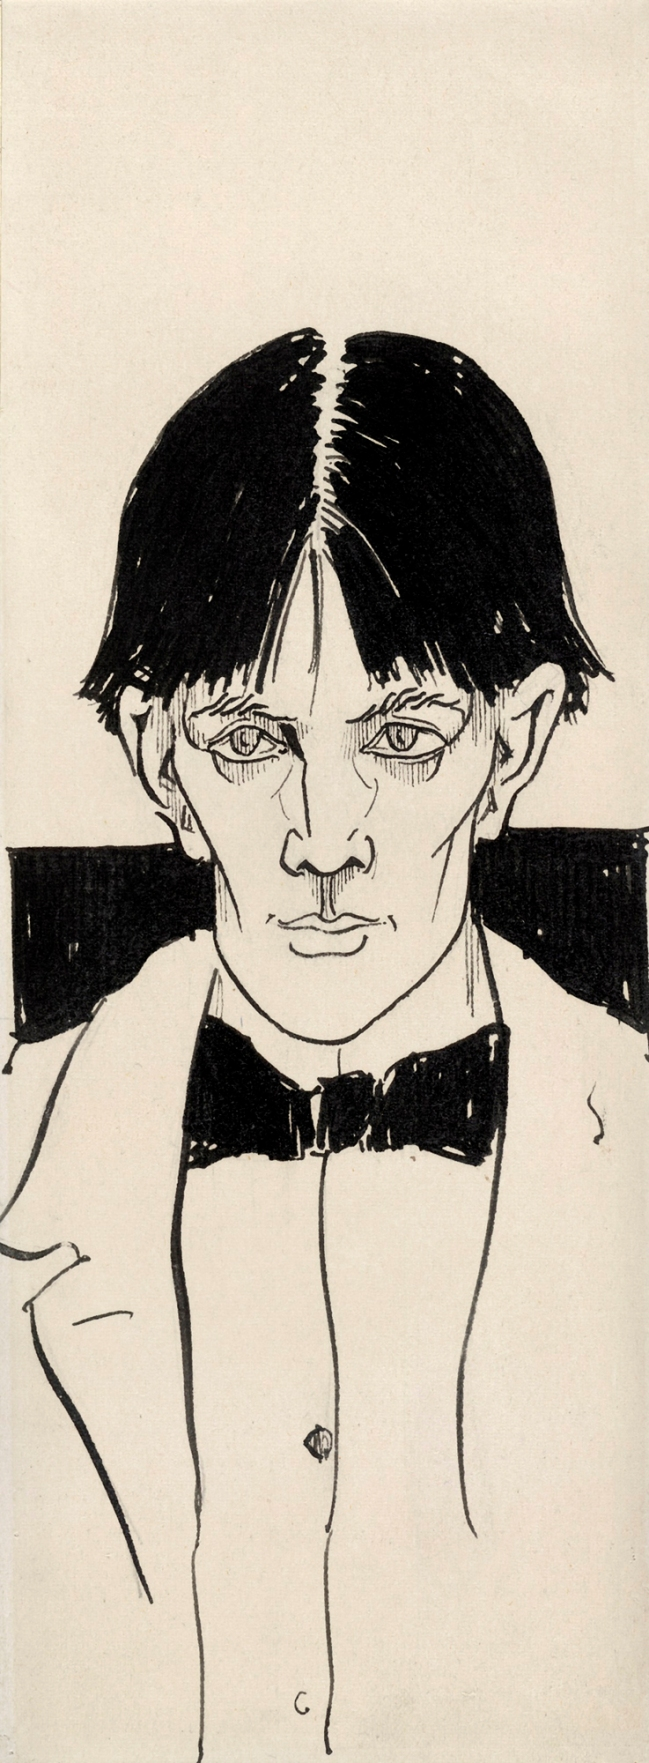 Aubrey Beardsley (British, 1872-98) 'Self-portrait' 1892